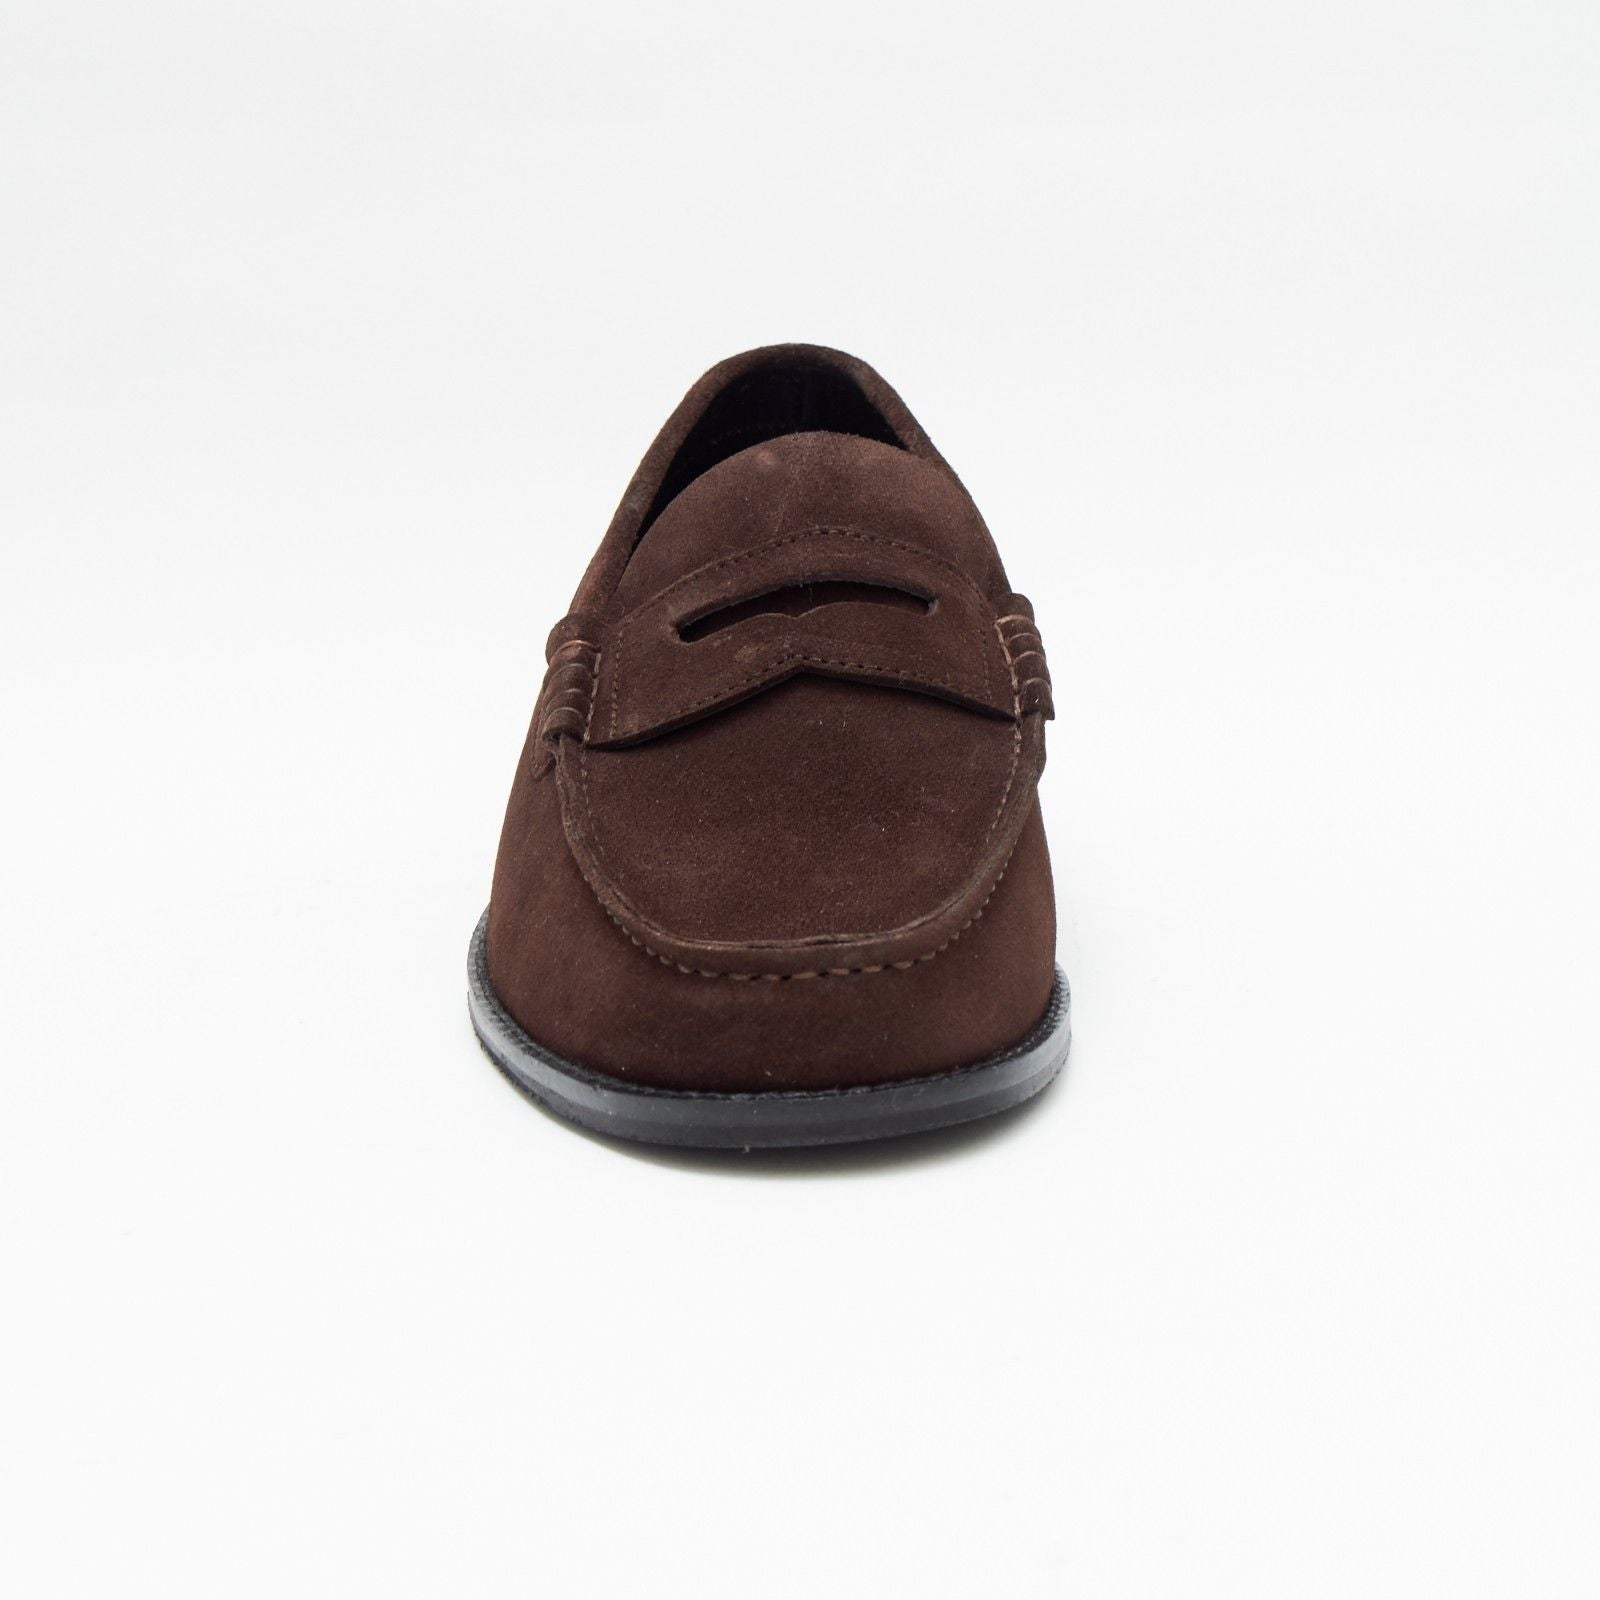 Mens Suede Casual Slip On Shoes - 17925_Brown Suede